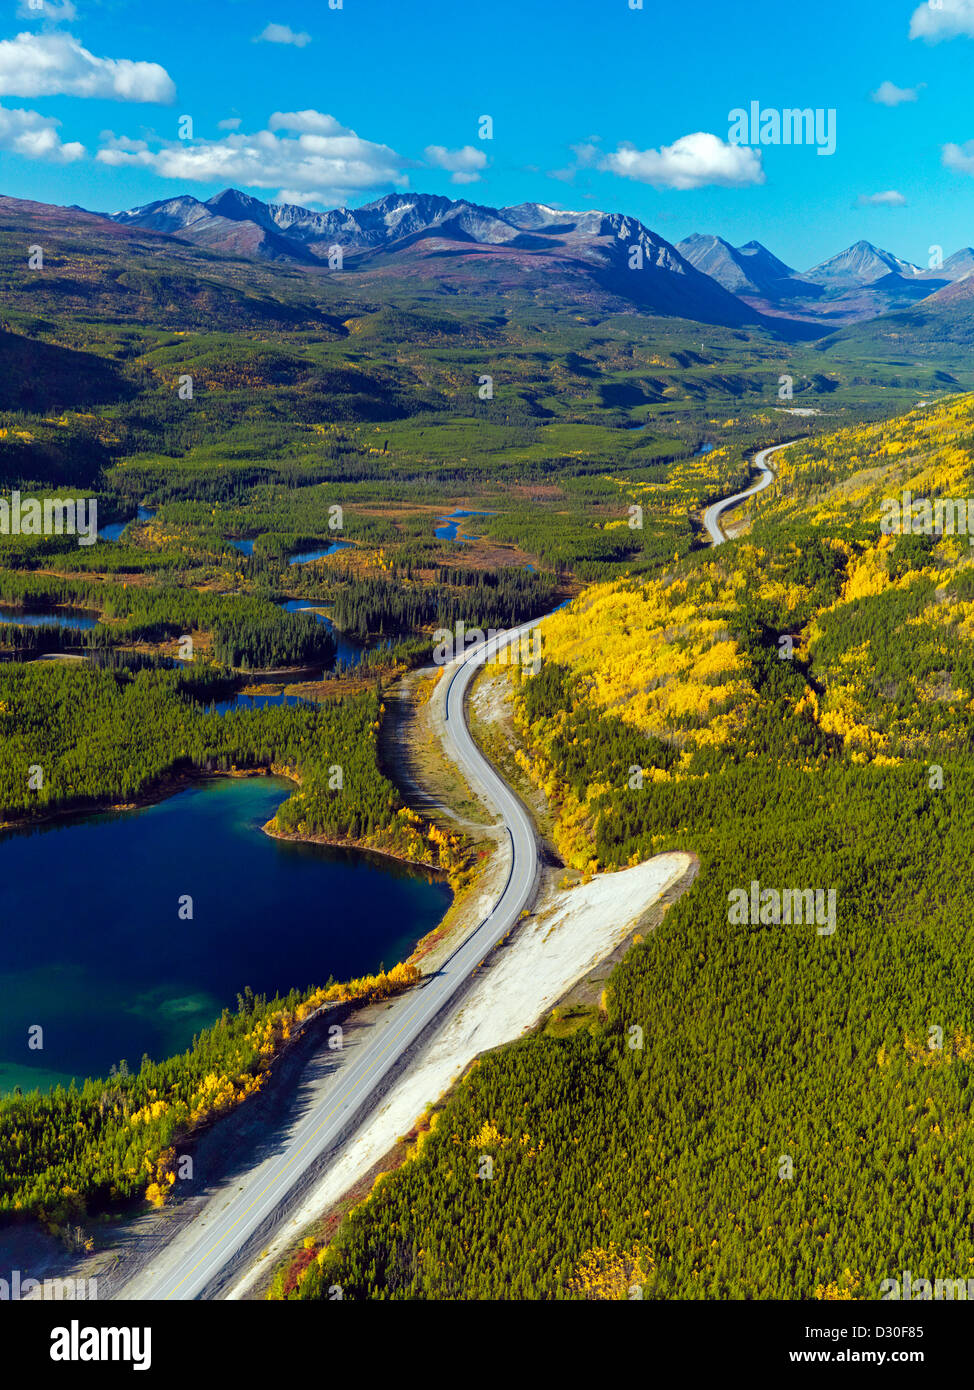 Driving the Alaska Highway up through the Yukon Territory in Canada in the fall makes for the experience of a lifetime! - Stock Image